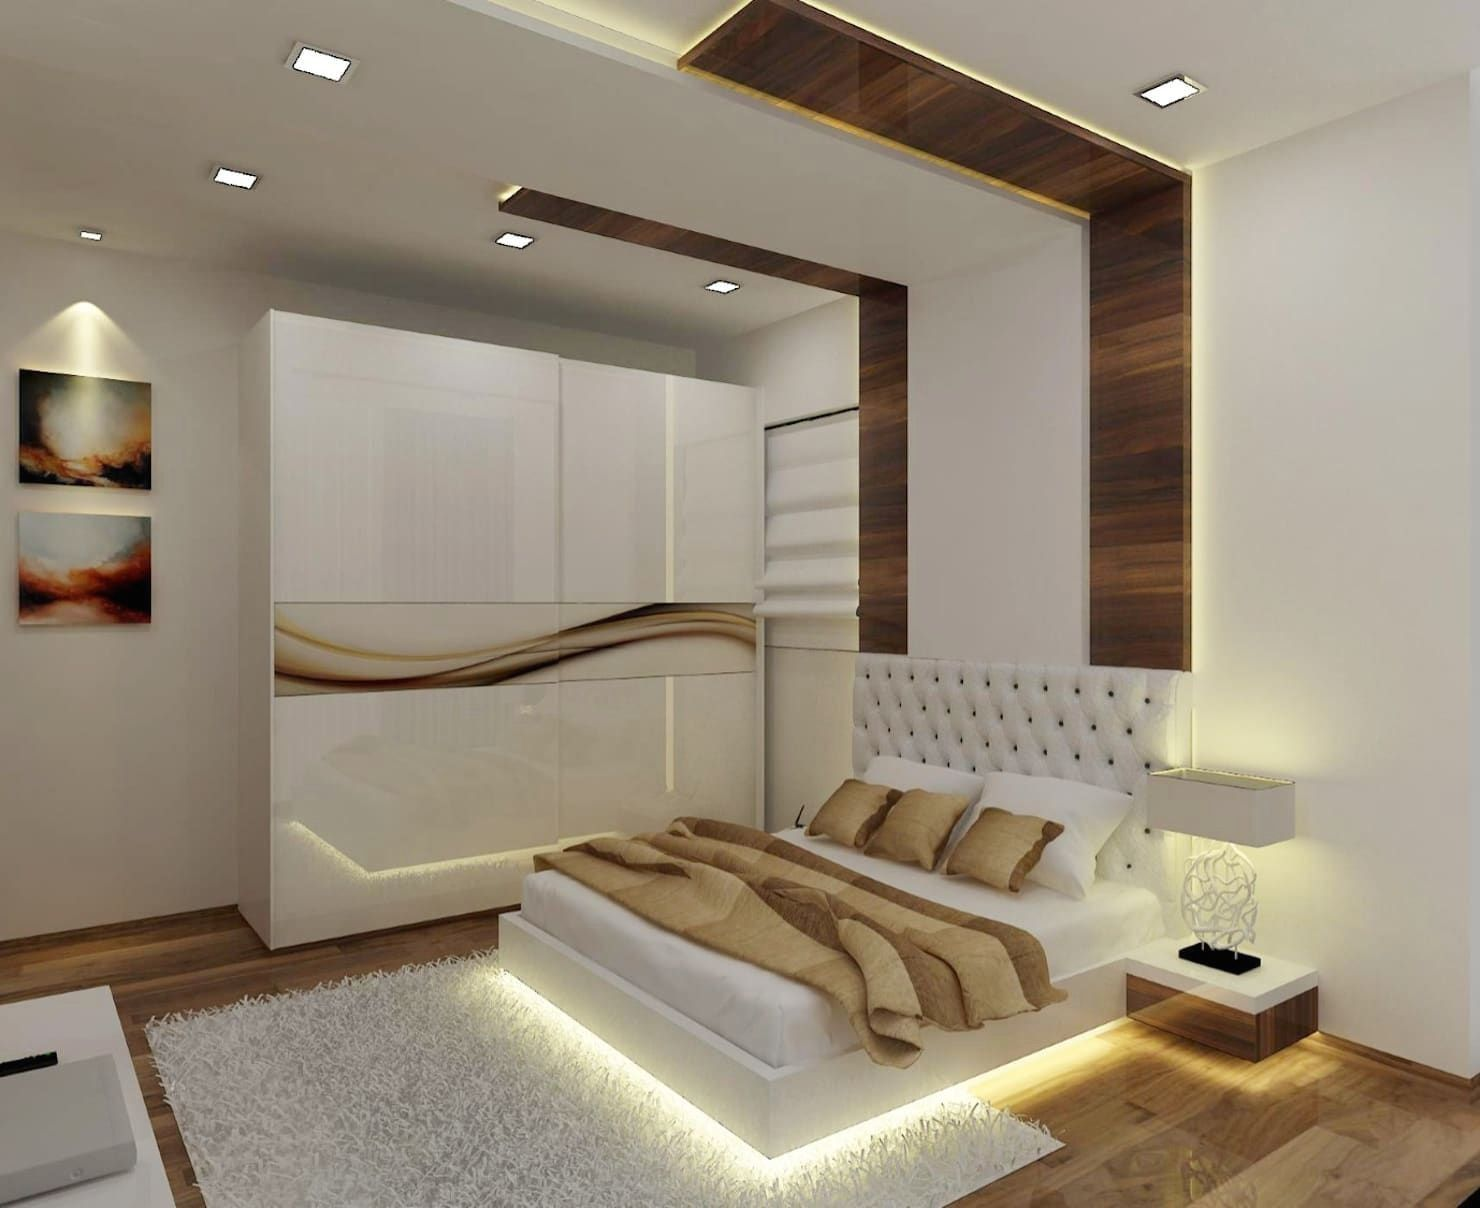 Master Bedroom Modern Style Bedroom By A Design Studio Modern Wood Wood Effect Homify 1000 In 2020 Modern Style Bedroom Ceiling Design Bedroom Modern Bedroom